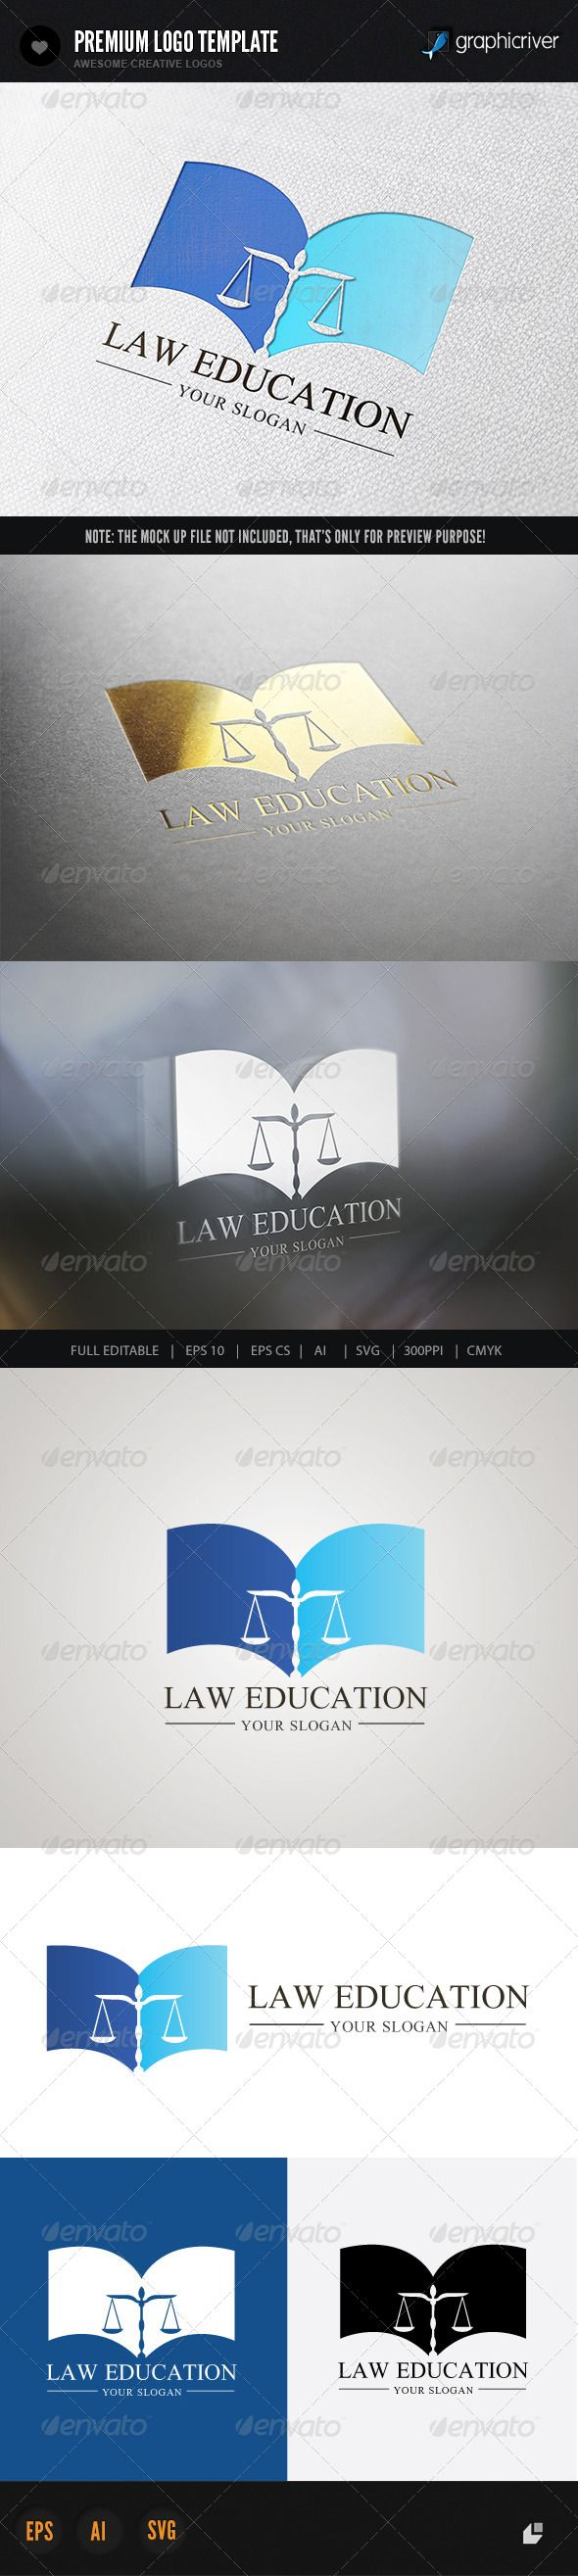 Law Education — Vector EPS #law office #security • Available here → https://graphicriver.net/item/law-education/6369330?ref=pxcr